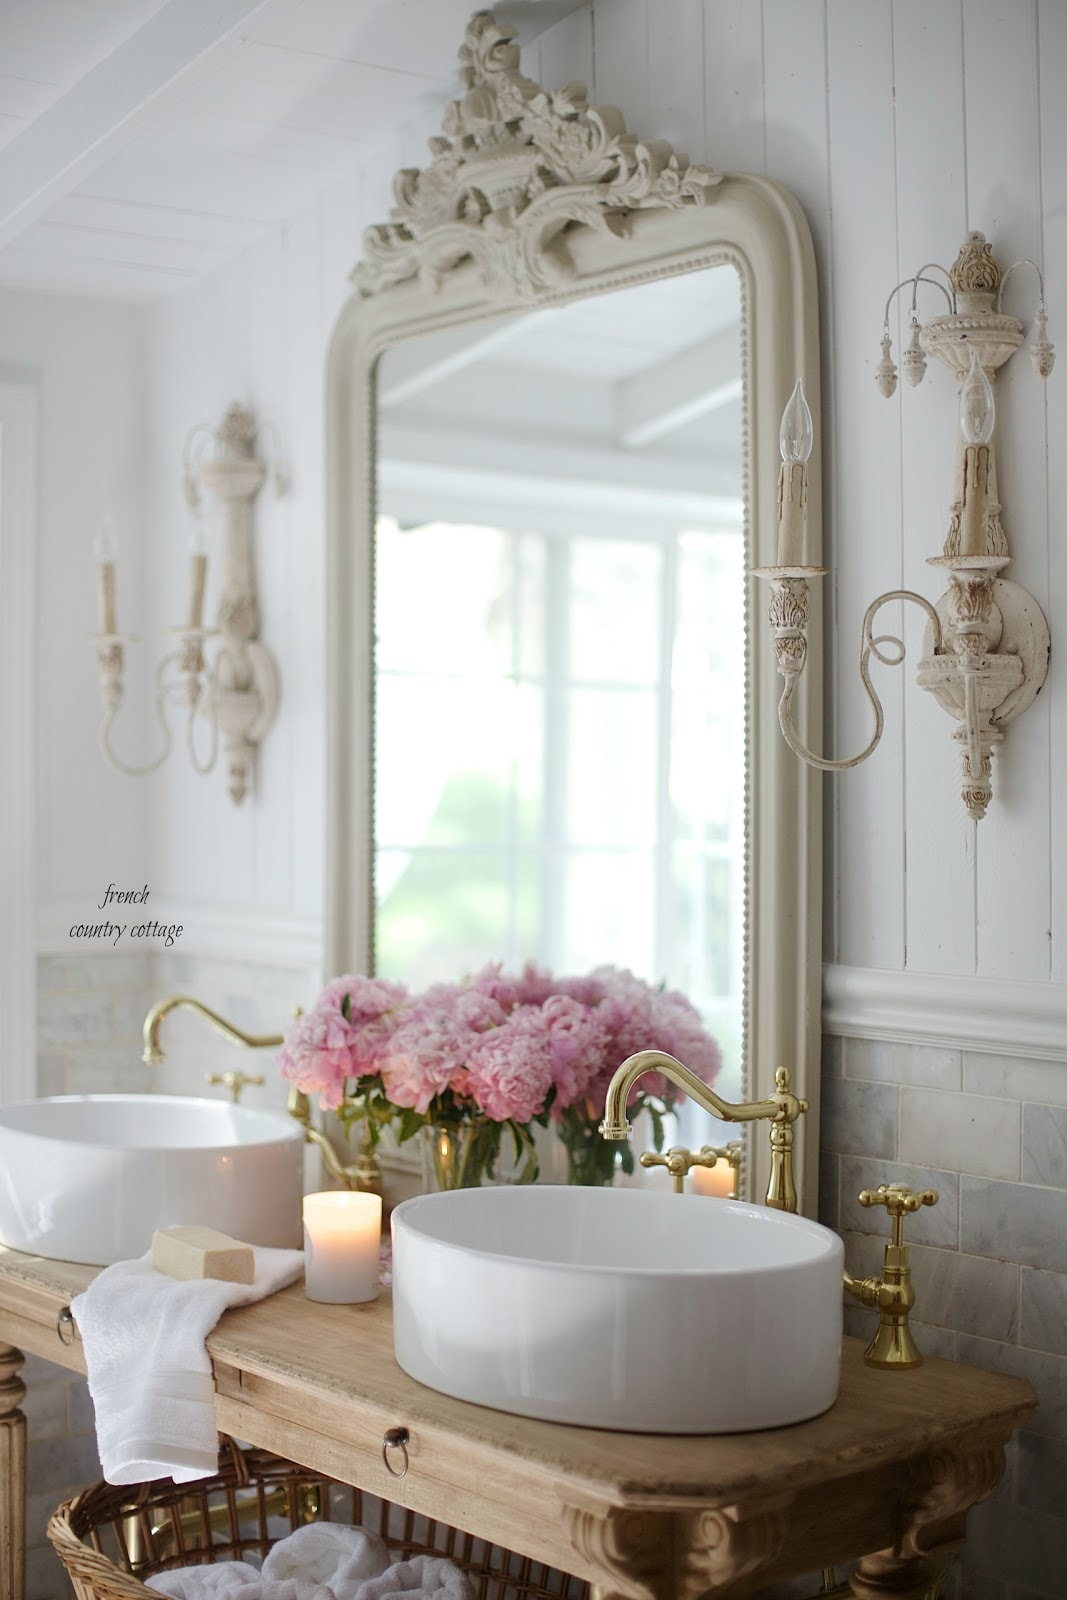 White master bath Inspiration - French Country Cottage